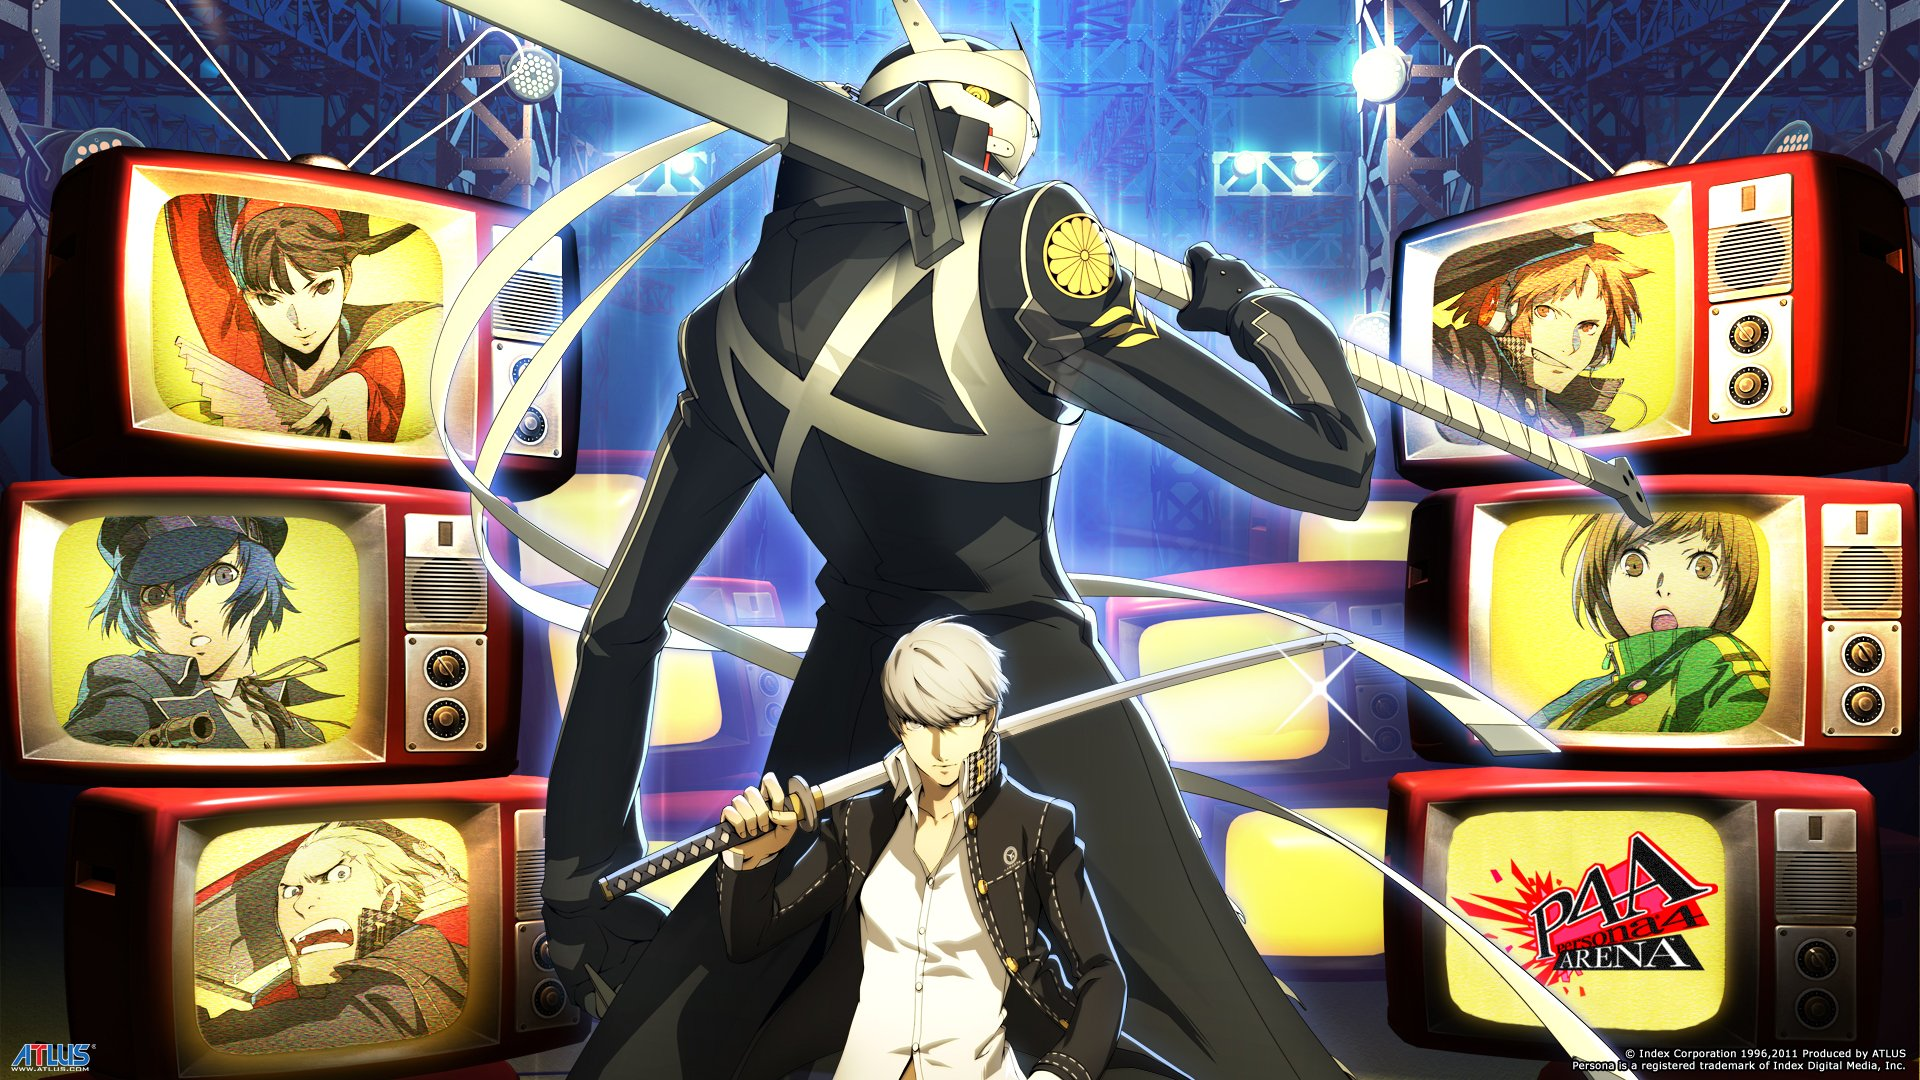 43 Persona 4 Arena Hd Wallpapers Background Images Wallpaper Abyss